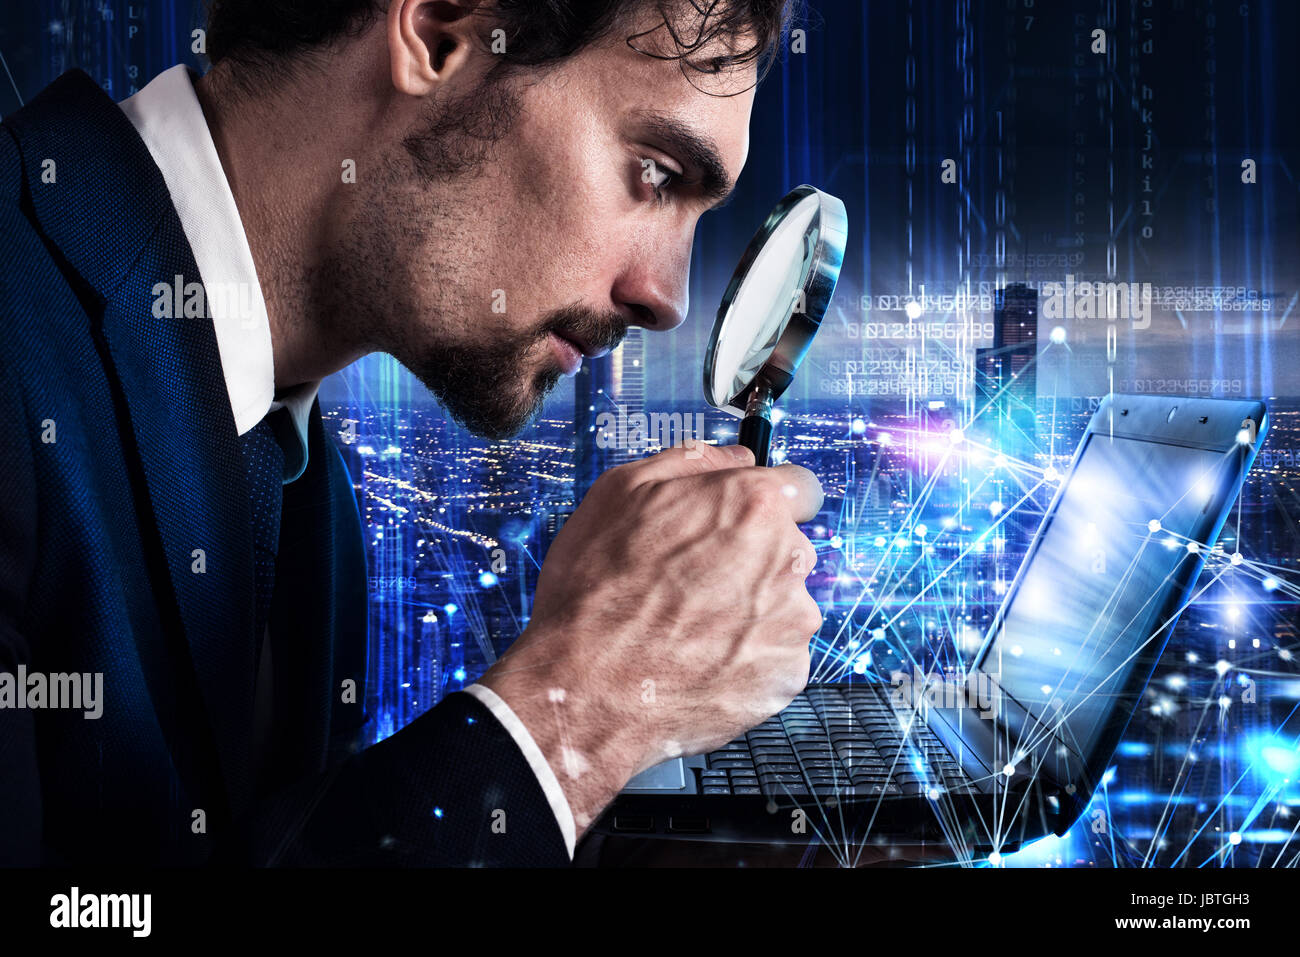 Man looks at the magnifying glass a laptop. Concept of software analysis - Stock Image